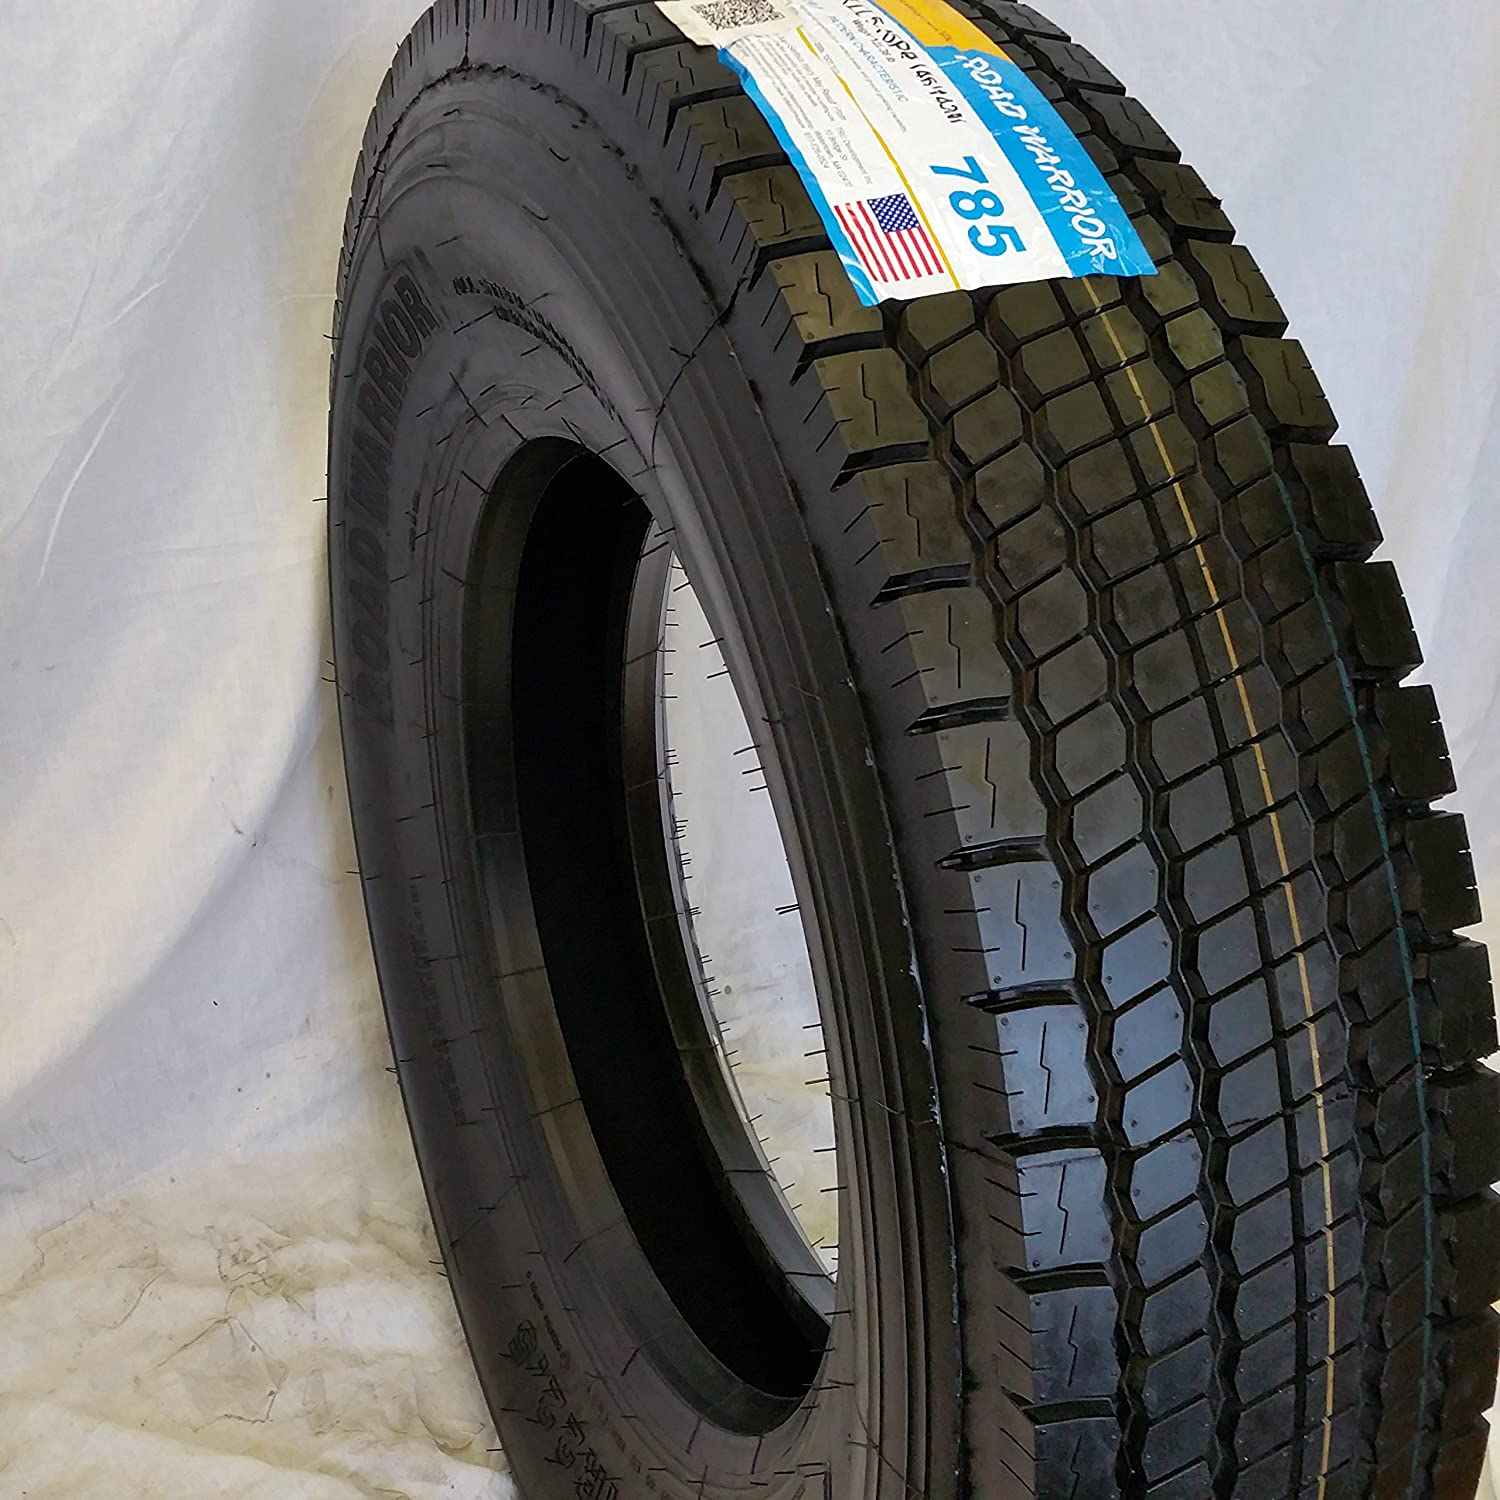 (4- TIRES) 11R22.5 ROAD WARRIOR NEW DRIVE TIRES 16 PLY - PREMIUM QUALITY TRU DEVELOPMENT INC